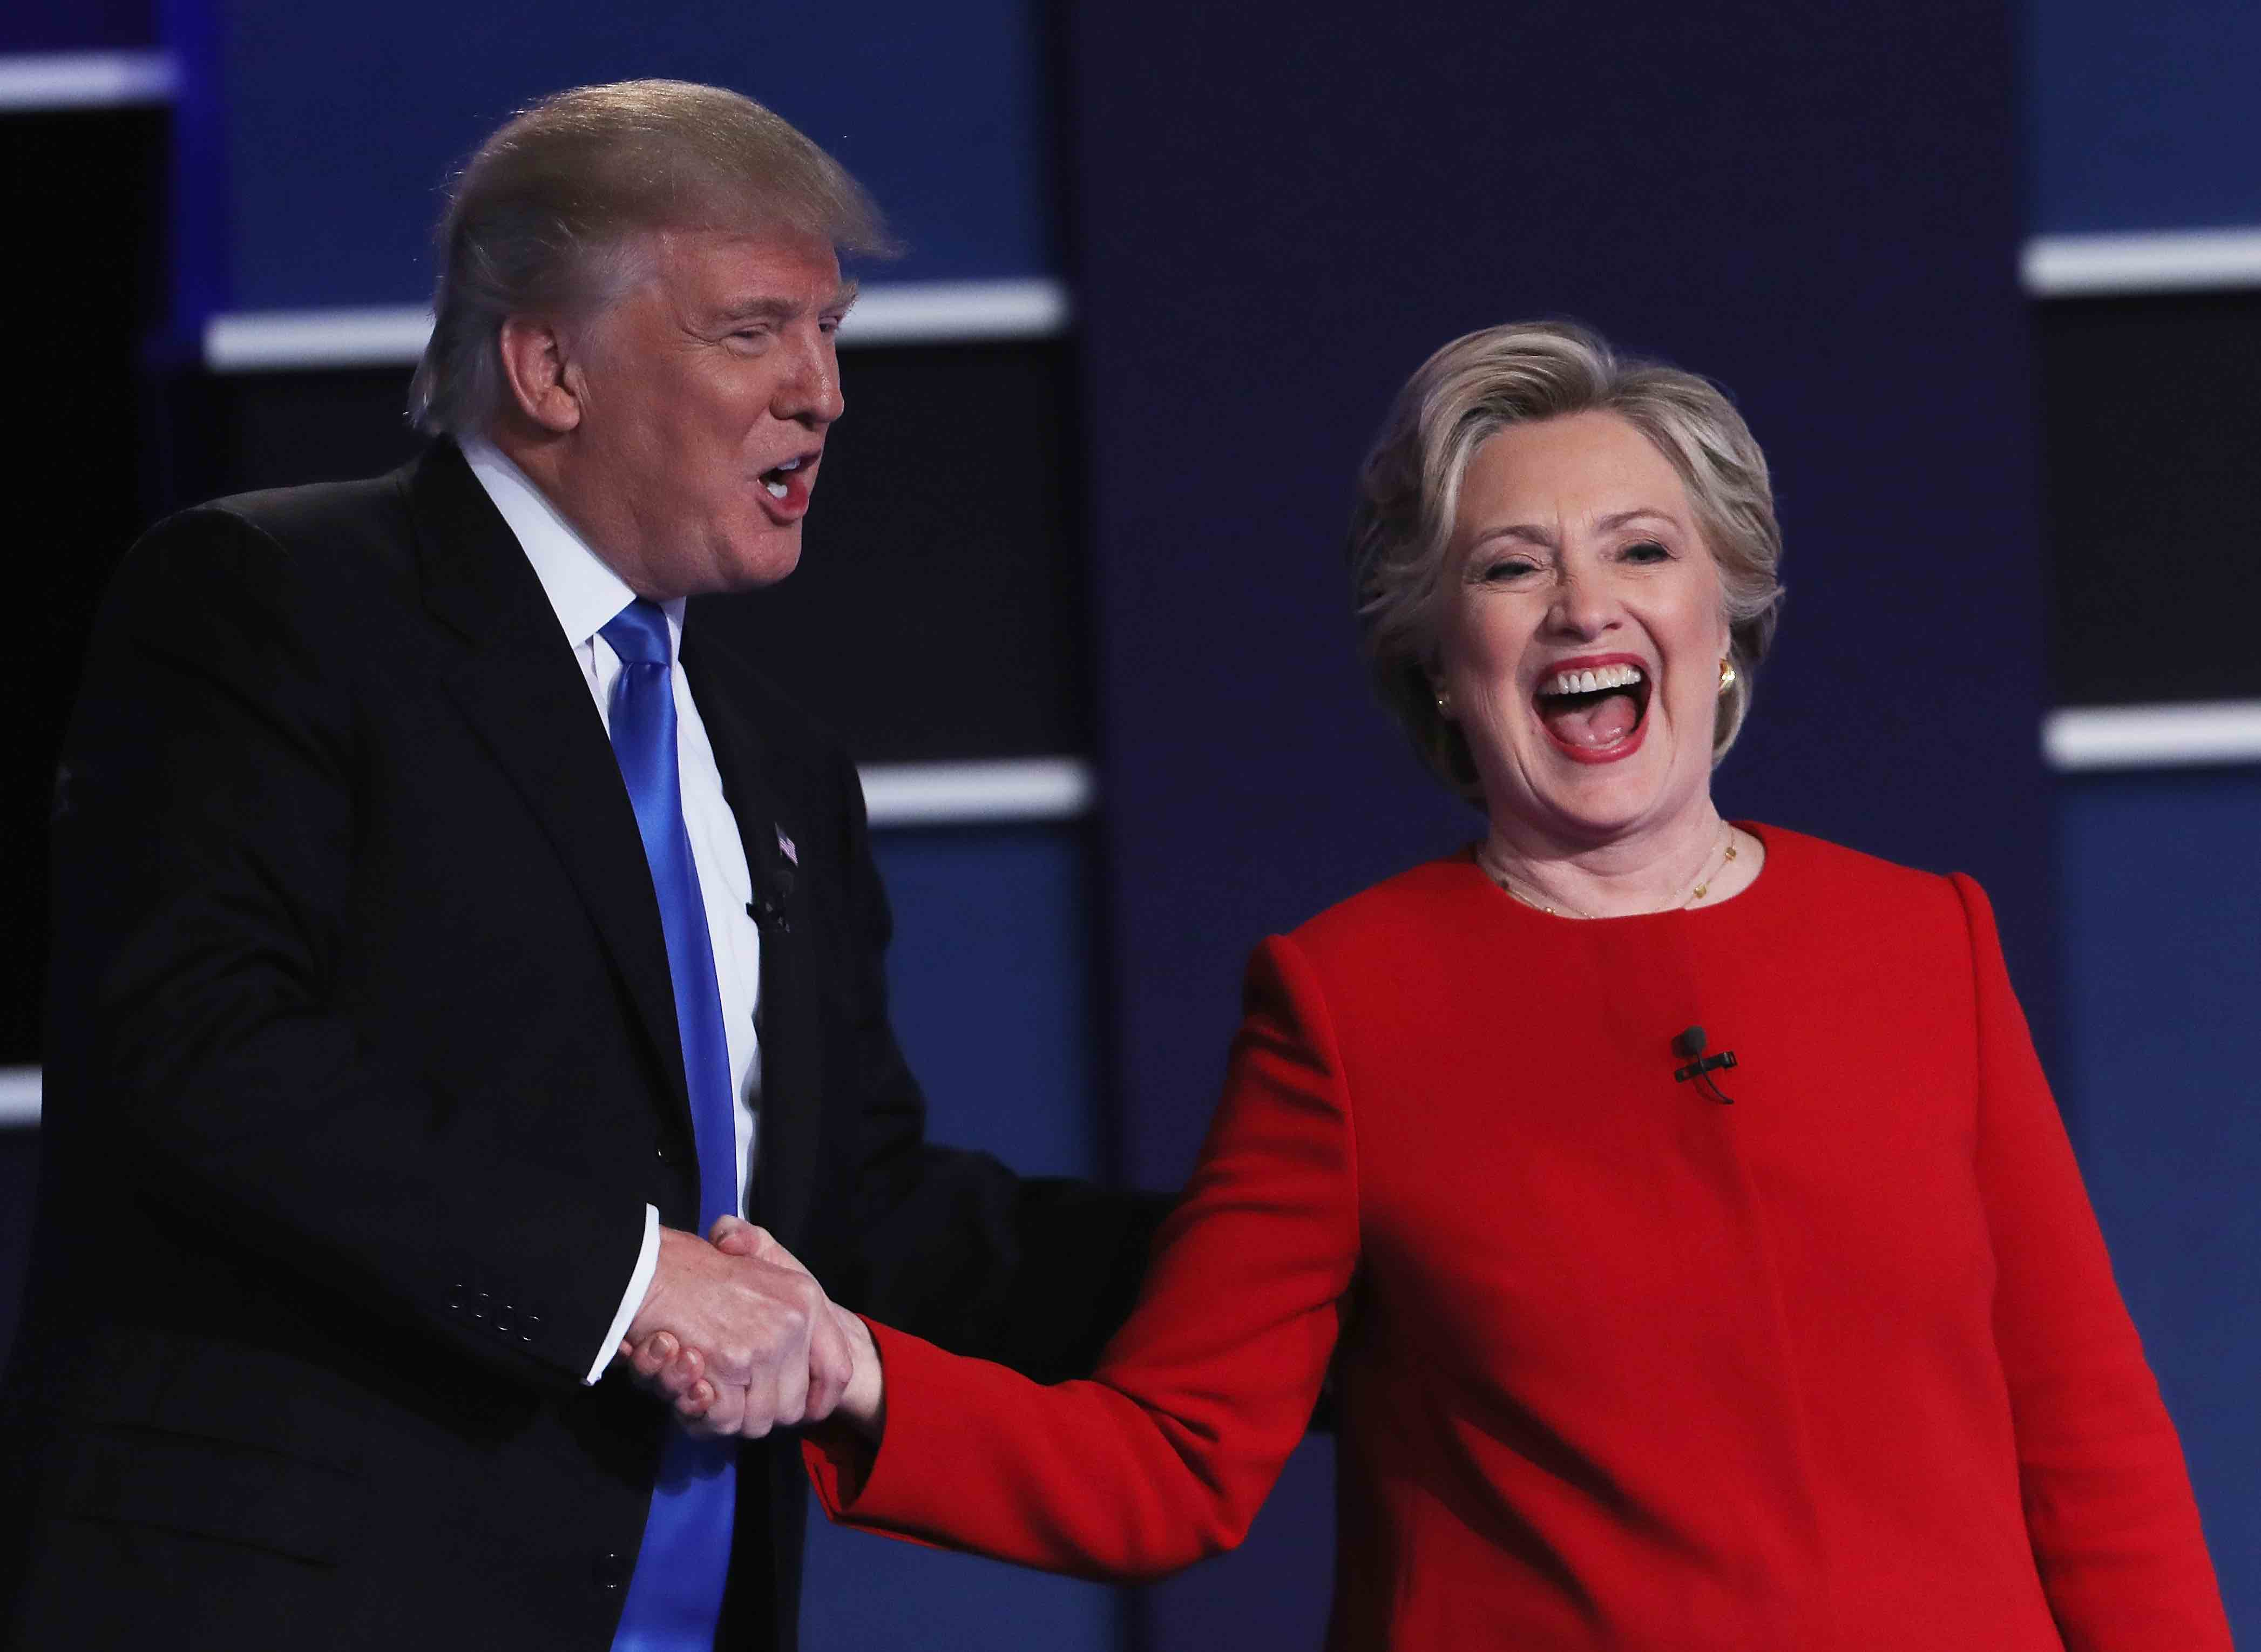 HEMPSTEAD, NY - SEPTEMBER 26:  (L-R) Republican presidential nominee Donald Trump and Democratic presidential nominee Hillary